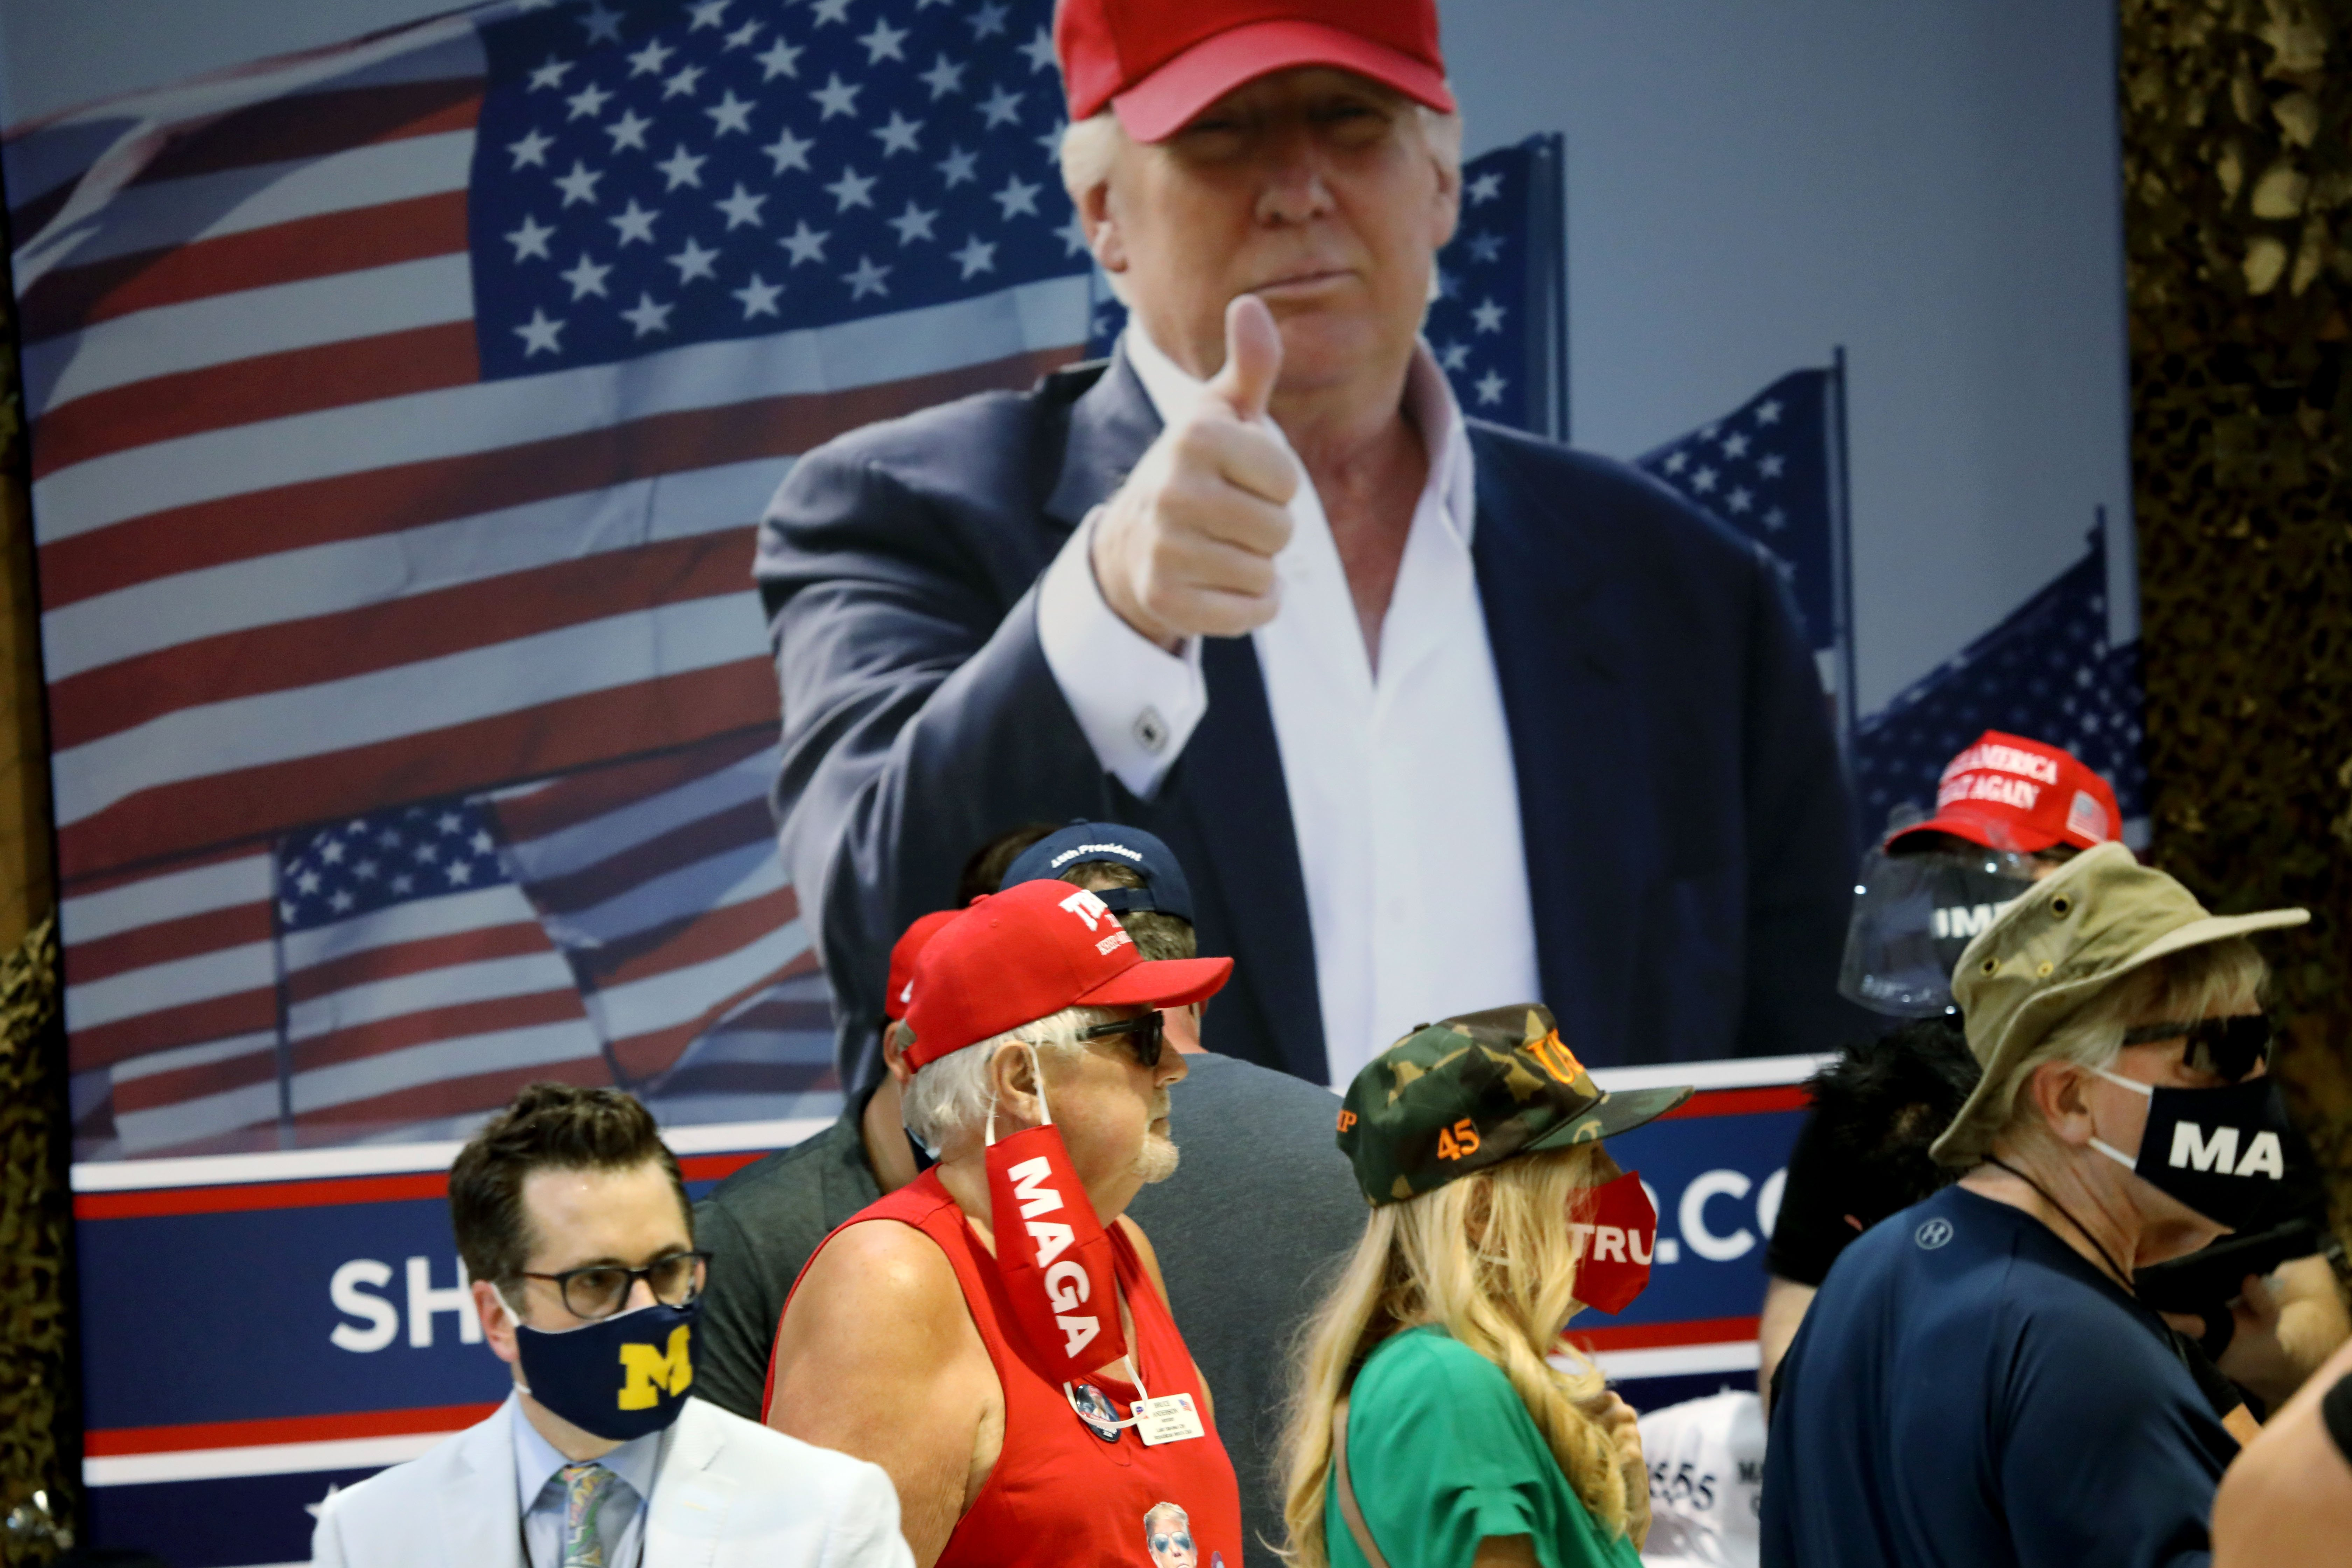 YUMA, AZ - AUGUST 18: Supporters of U.S. President Donald Trump attend a campaign rally at The Defense Contractor Complex on August 18, 2020 in Yuma, Arizona. Trump excoriated presumptive Democratic nominee former Vice President Joe Biden as being soft on illegal immigration as Democrats hold their convention this week remotely from Milwaukee. Hundreds waited in line in 104-degree heat to see the president, many without masks or maintaining distance from others, according to published reports. The crowd size inside the hangar was limited in a nod to the ongoing pandemic that has hit Yuma County particularly hard. (Photo by Sandy Huffaker/Getty Images)